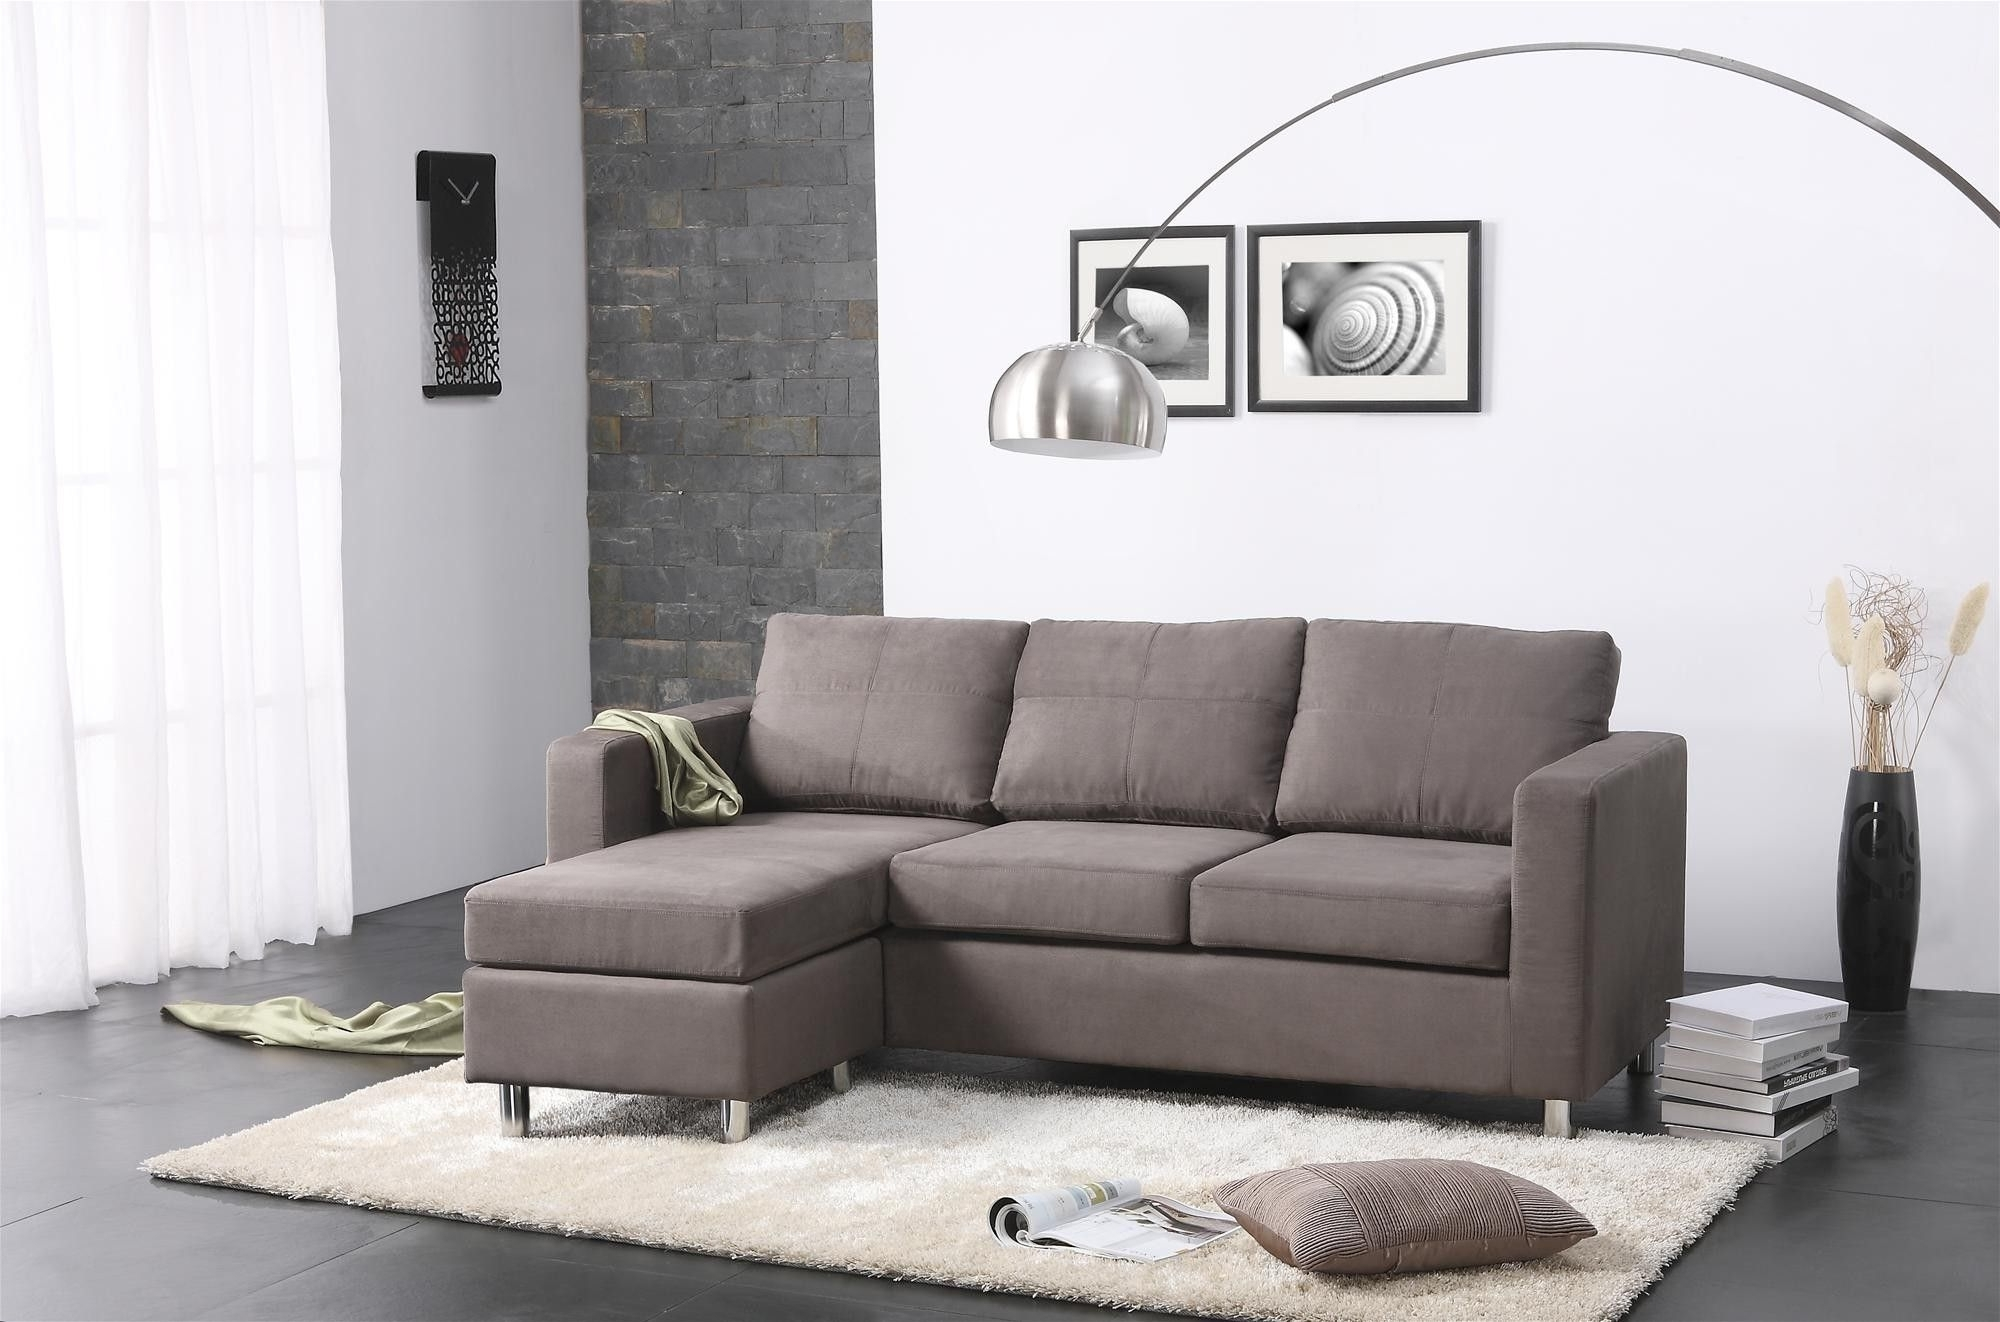 Widely Used Canada Sectional Sofas For Small Spaces Regarding Amazing Modern Small Spaces Living Room Decors With Grey Sectional (View 11 of 20)